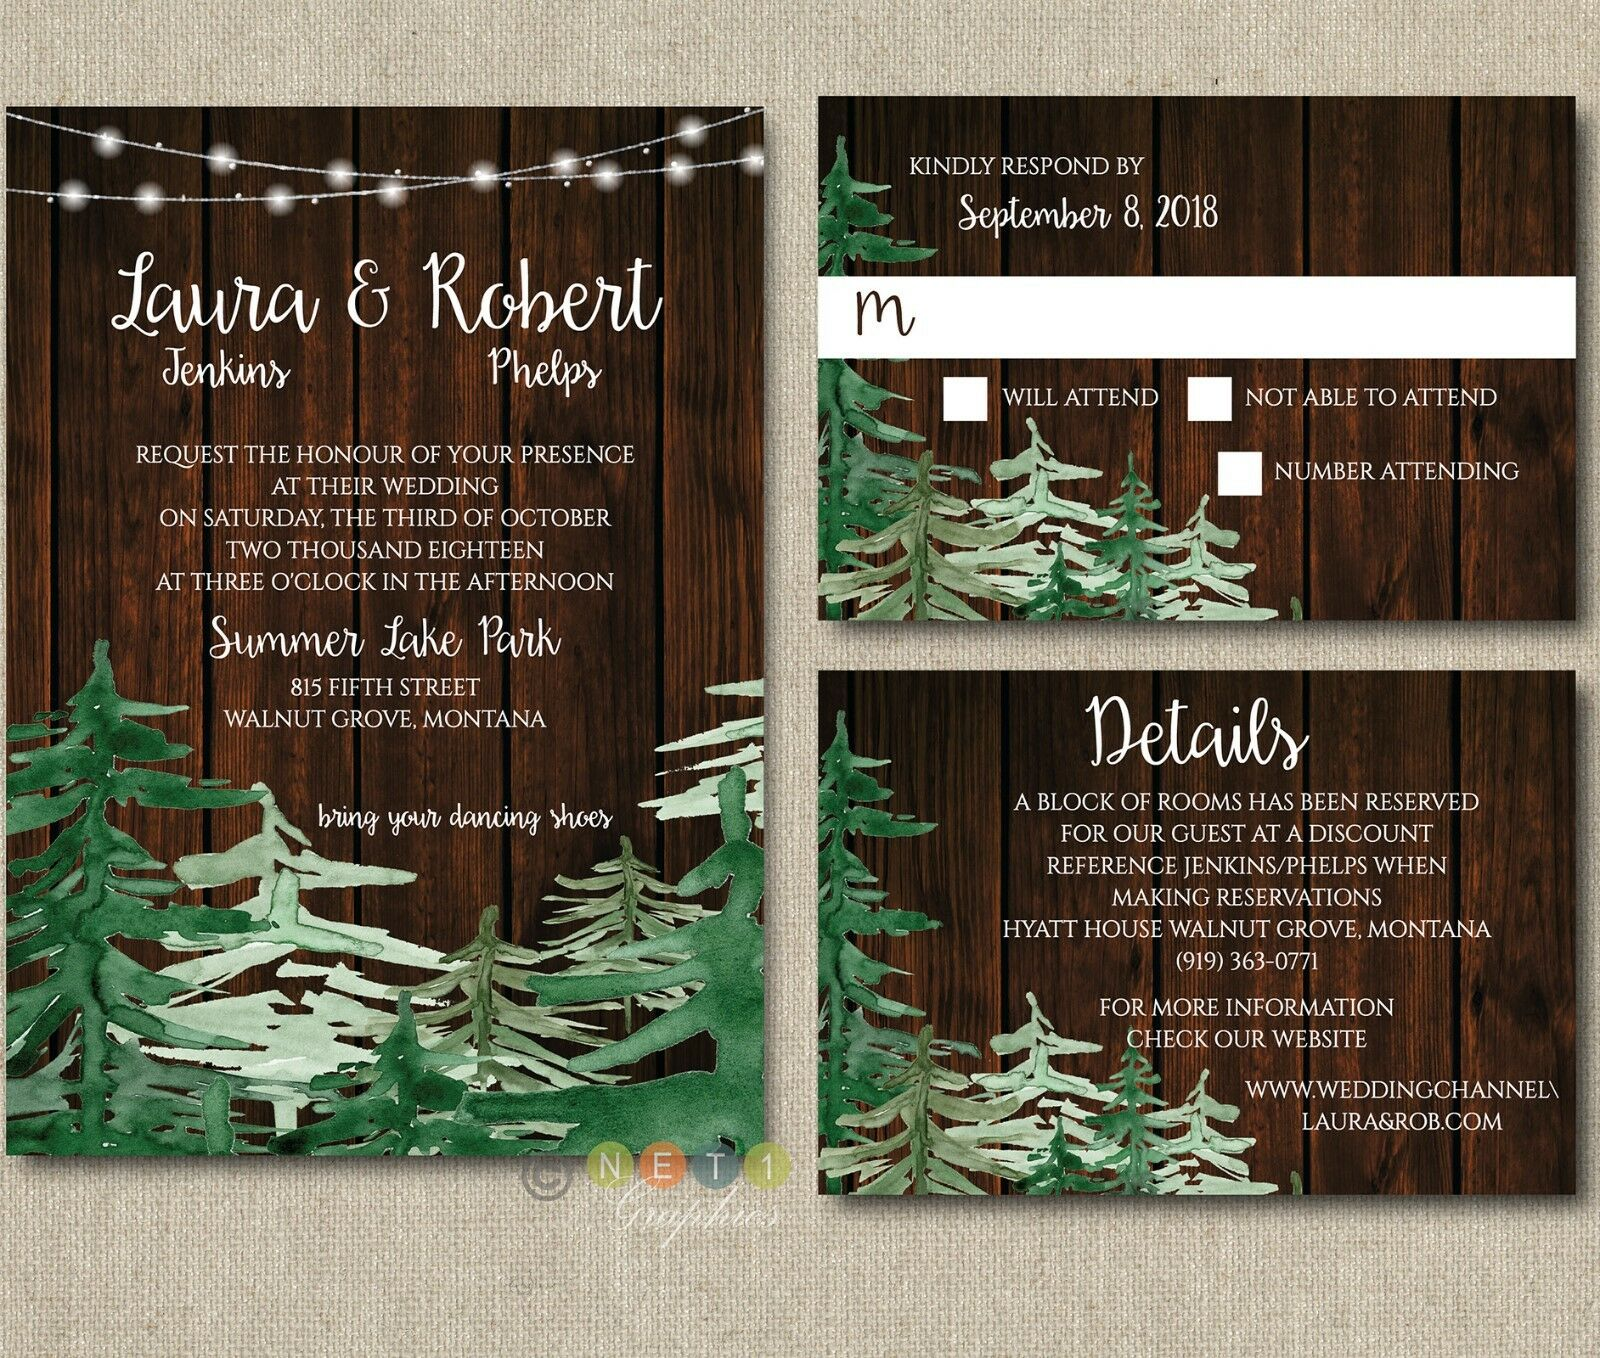 100 Personalized Wedding Invitations Rustic Pine Tree Holiday with Envelopes